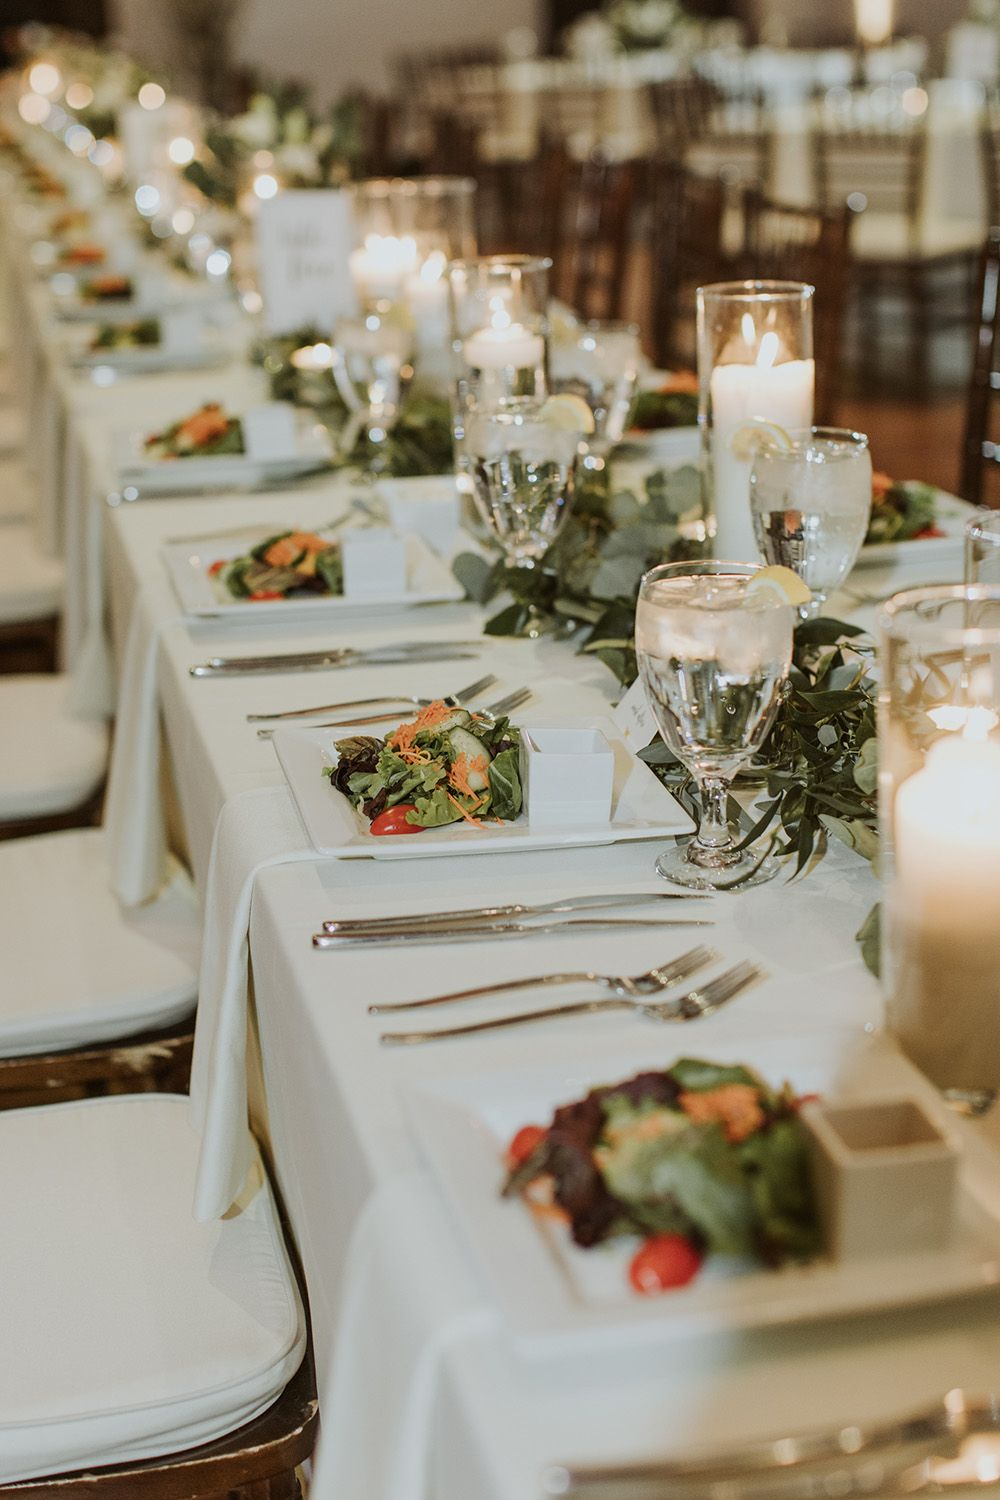 Wedding Table Settings | Plated Dinner | Infinity Events u0026 Catering #exploreinfinitenashville & Wedding Table Settings | Plated Dinner | Infinity Events u0026 Catering ...